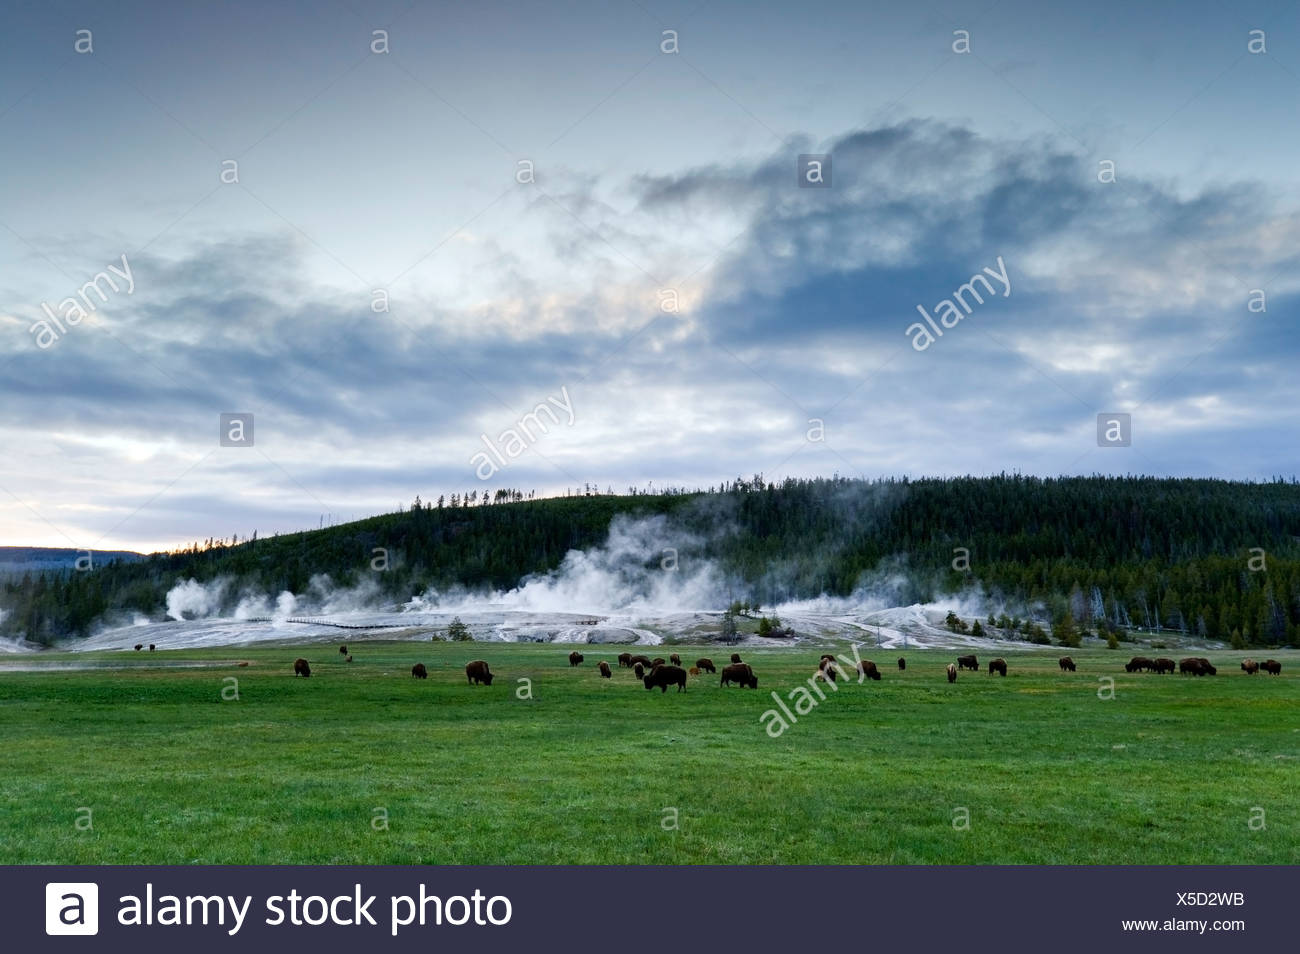 A herd of buffalo graze in front of Upper Geyser Basin in Yellowstone National Park, Wyoming. - Stock Image